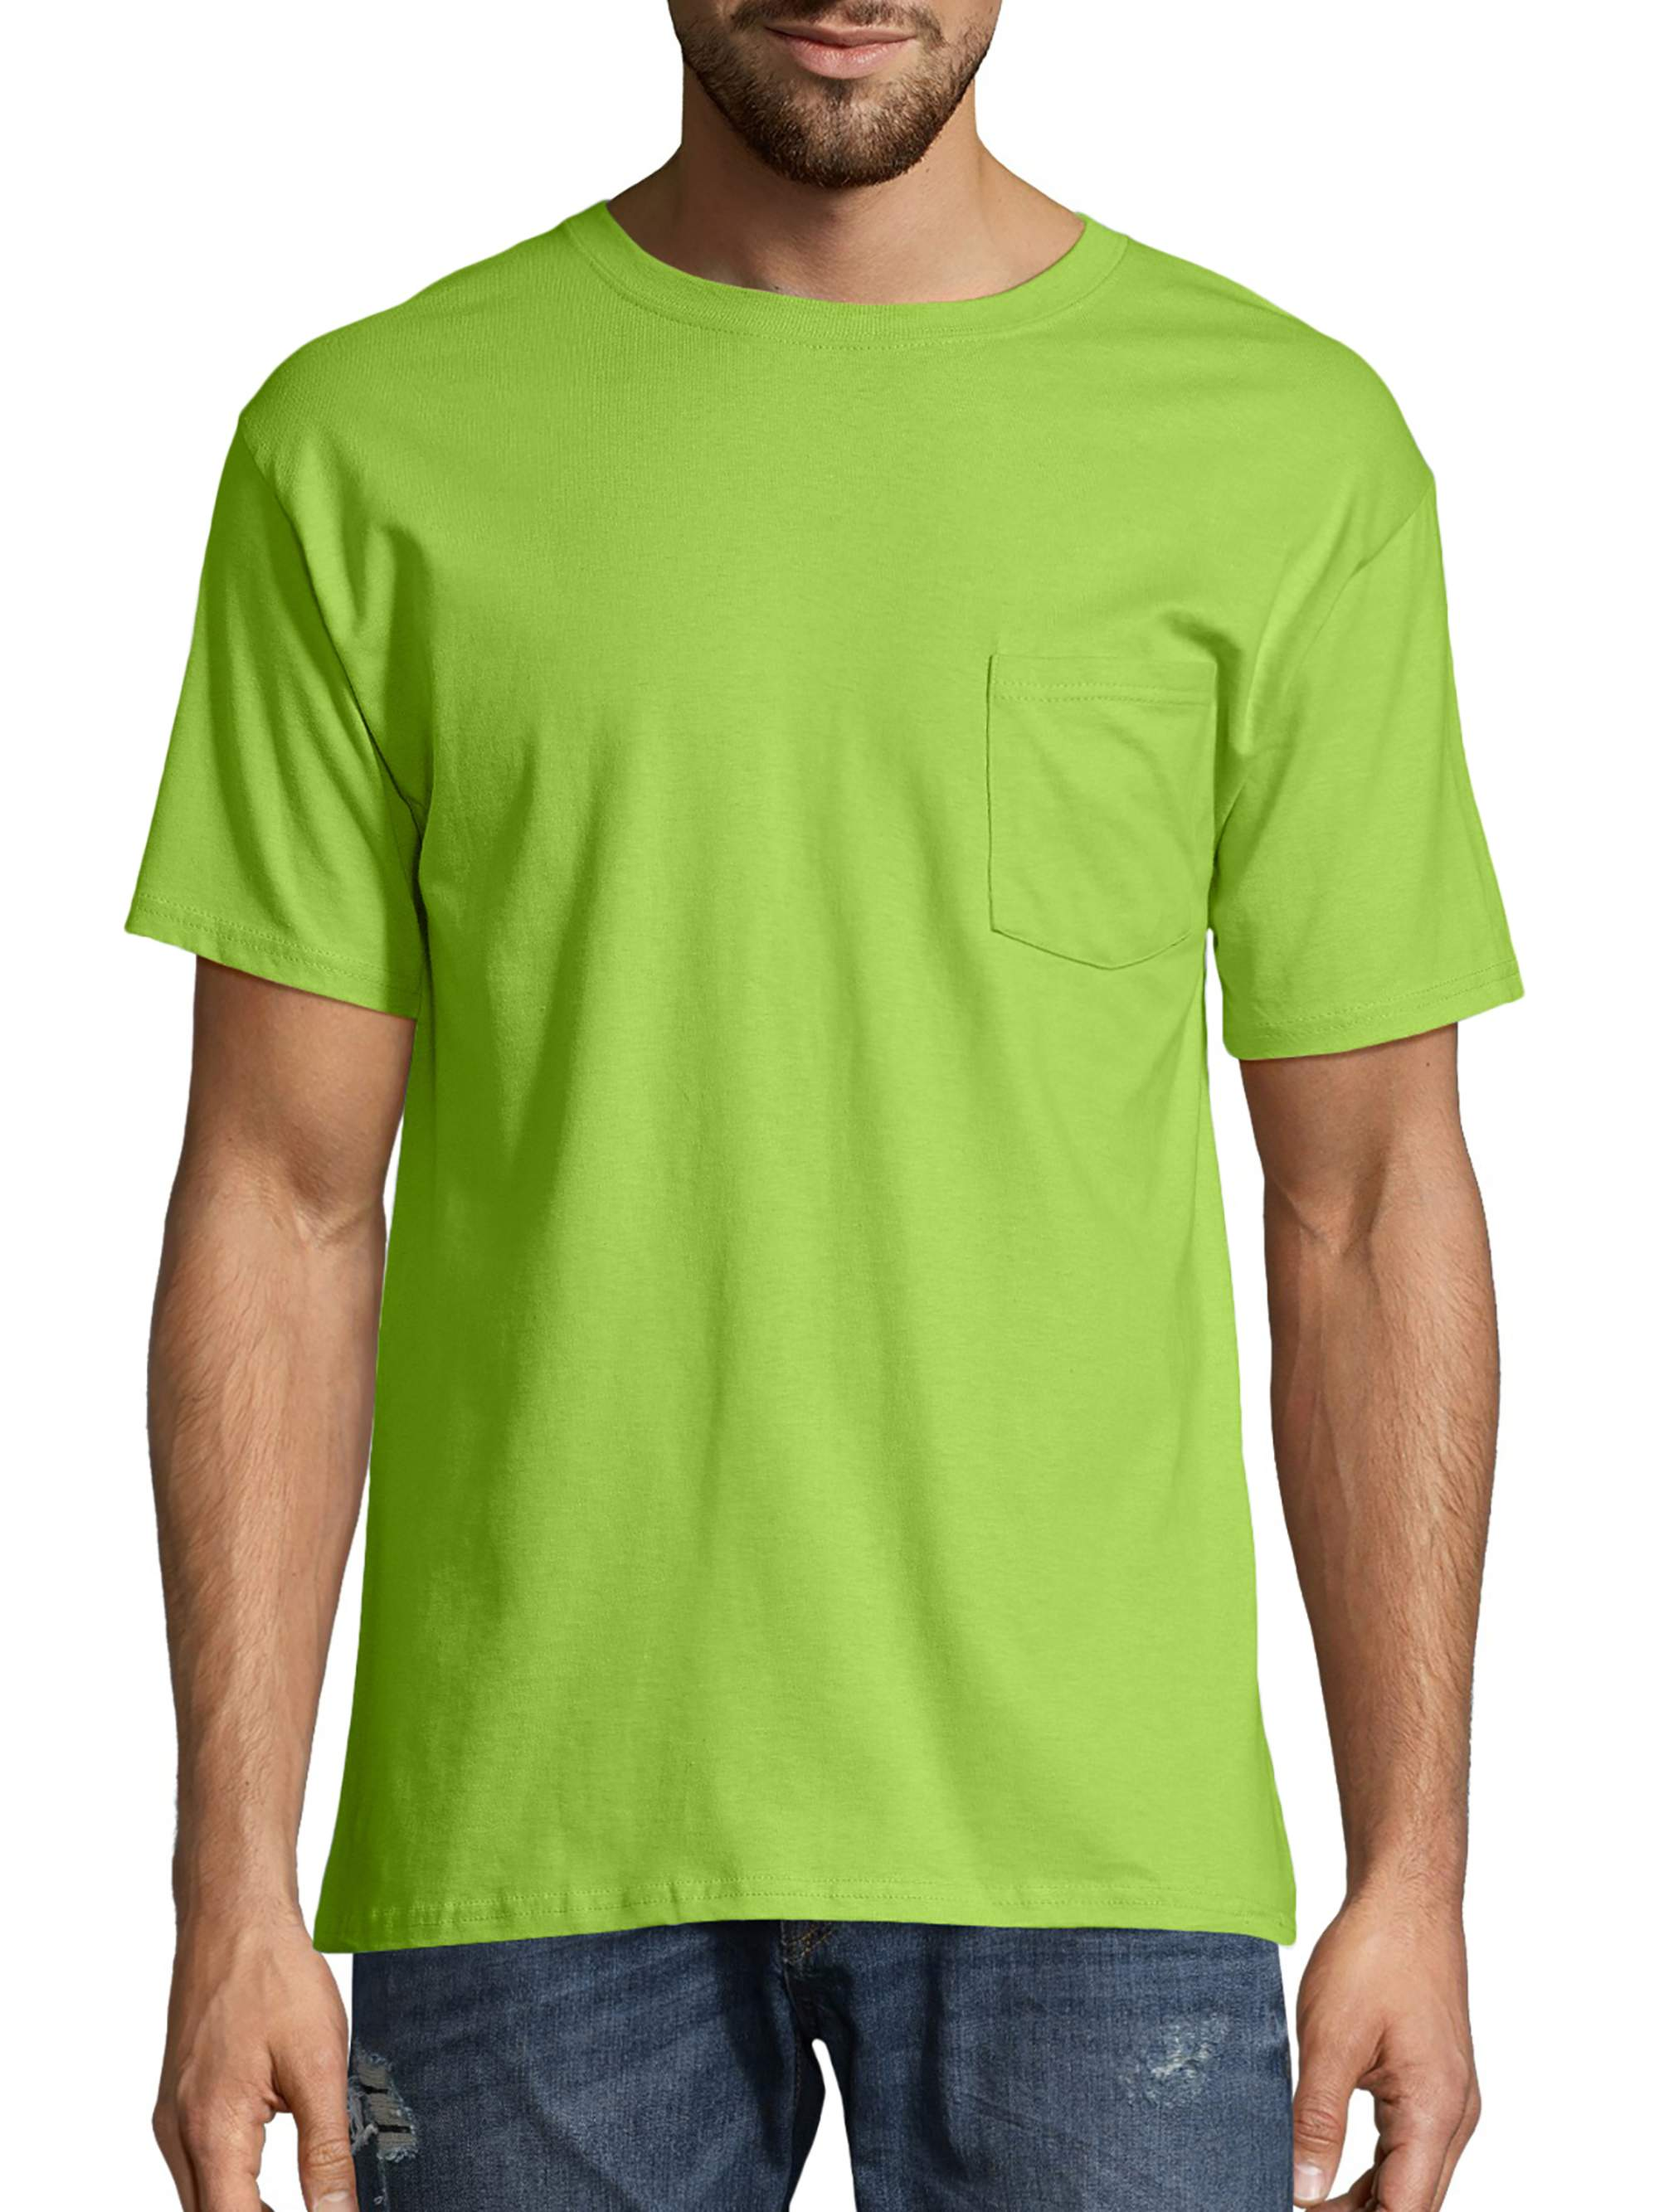 3fa5e8534 Hanes - Hanes Big Men's Tagless Short Sleeve Pocket T-Shirt - Walmart.com